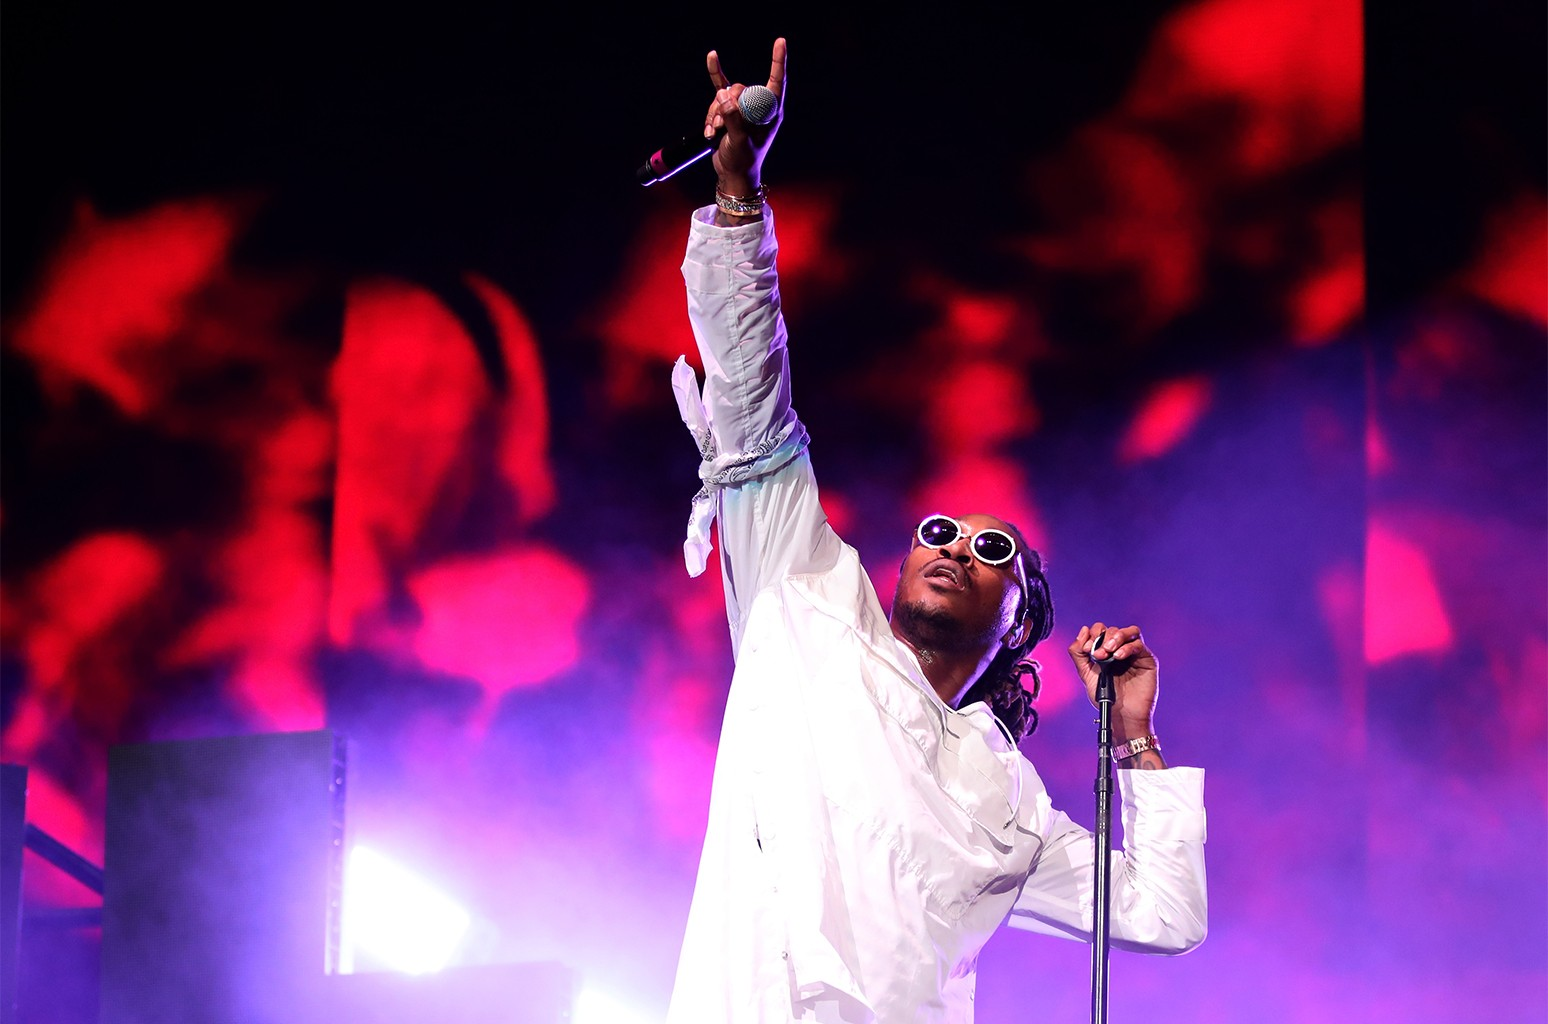 Future performs on the Coachella Stage during day 2 of the Coachella Valley Music And Arts Festival (Weekend 1) at the Empire Polo Club on April 15, 2017 in Indio, Calif.